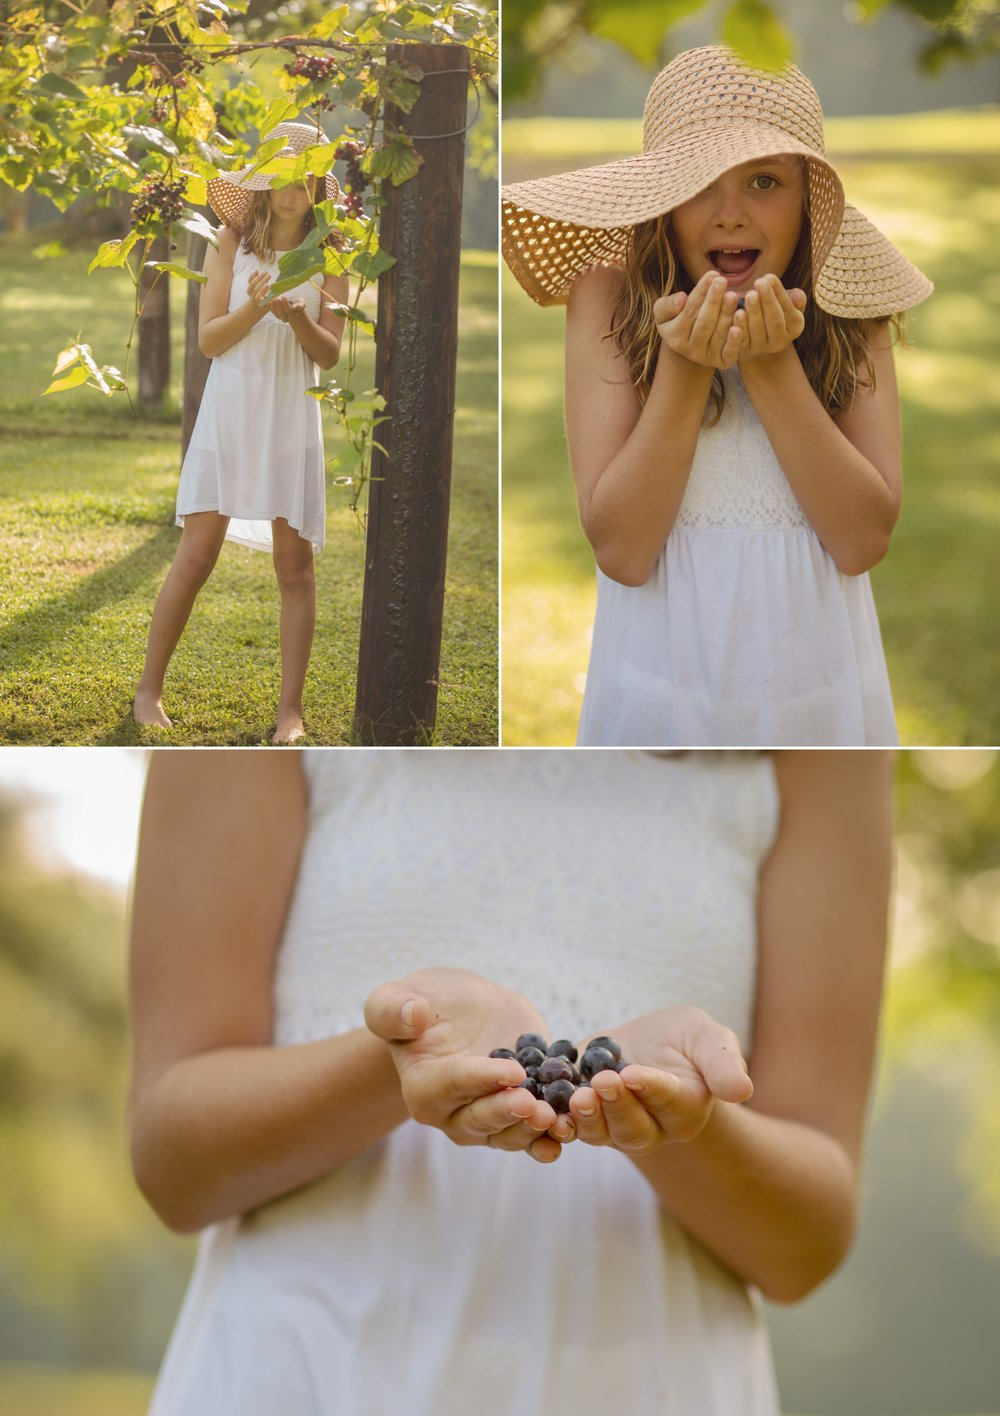 Child holds grapes during Sanford area portrait photography session